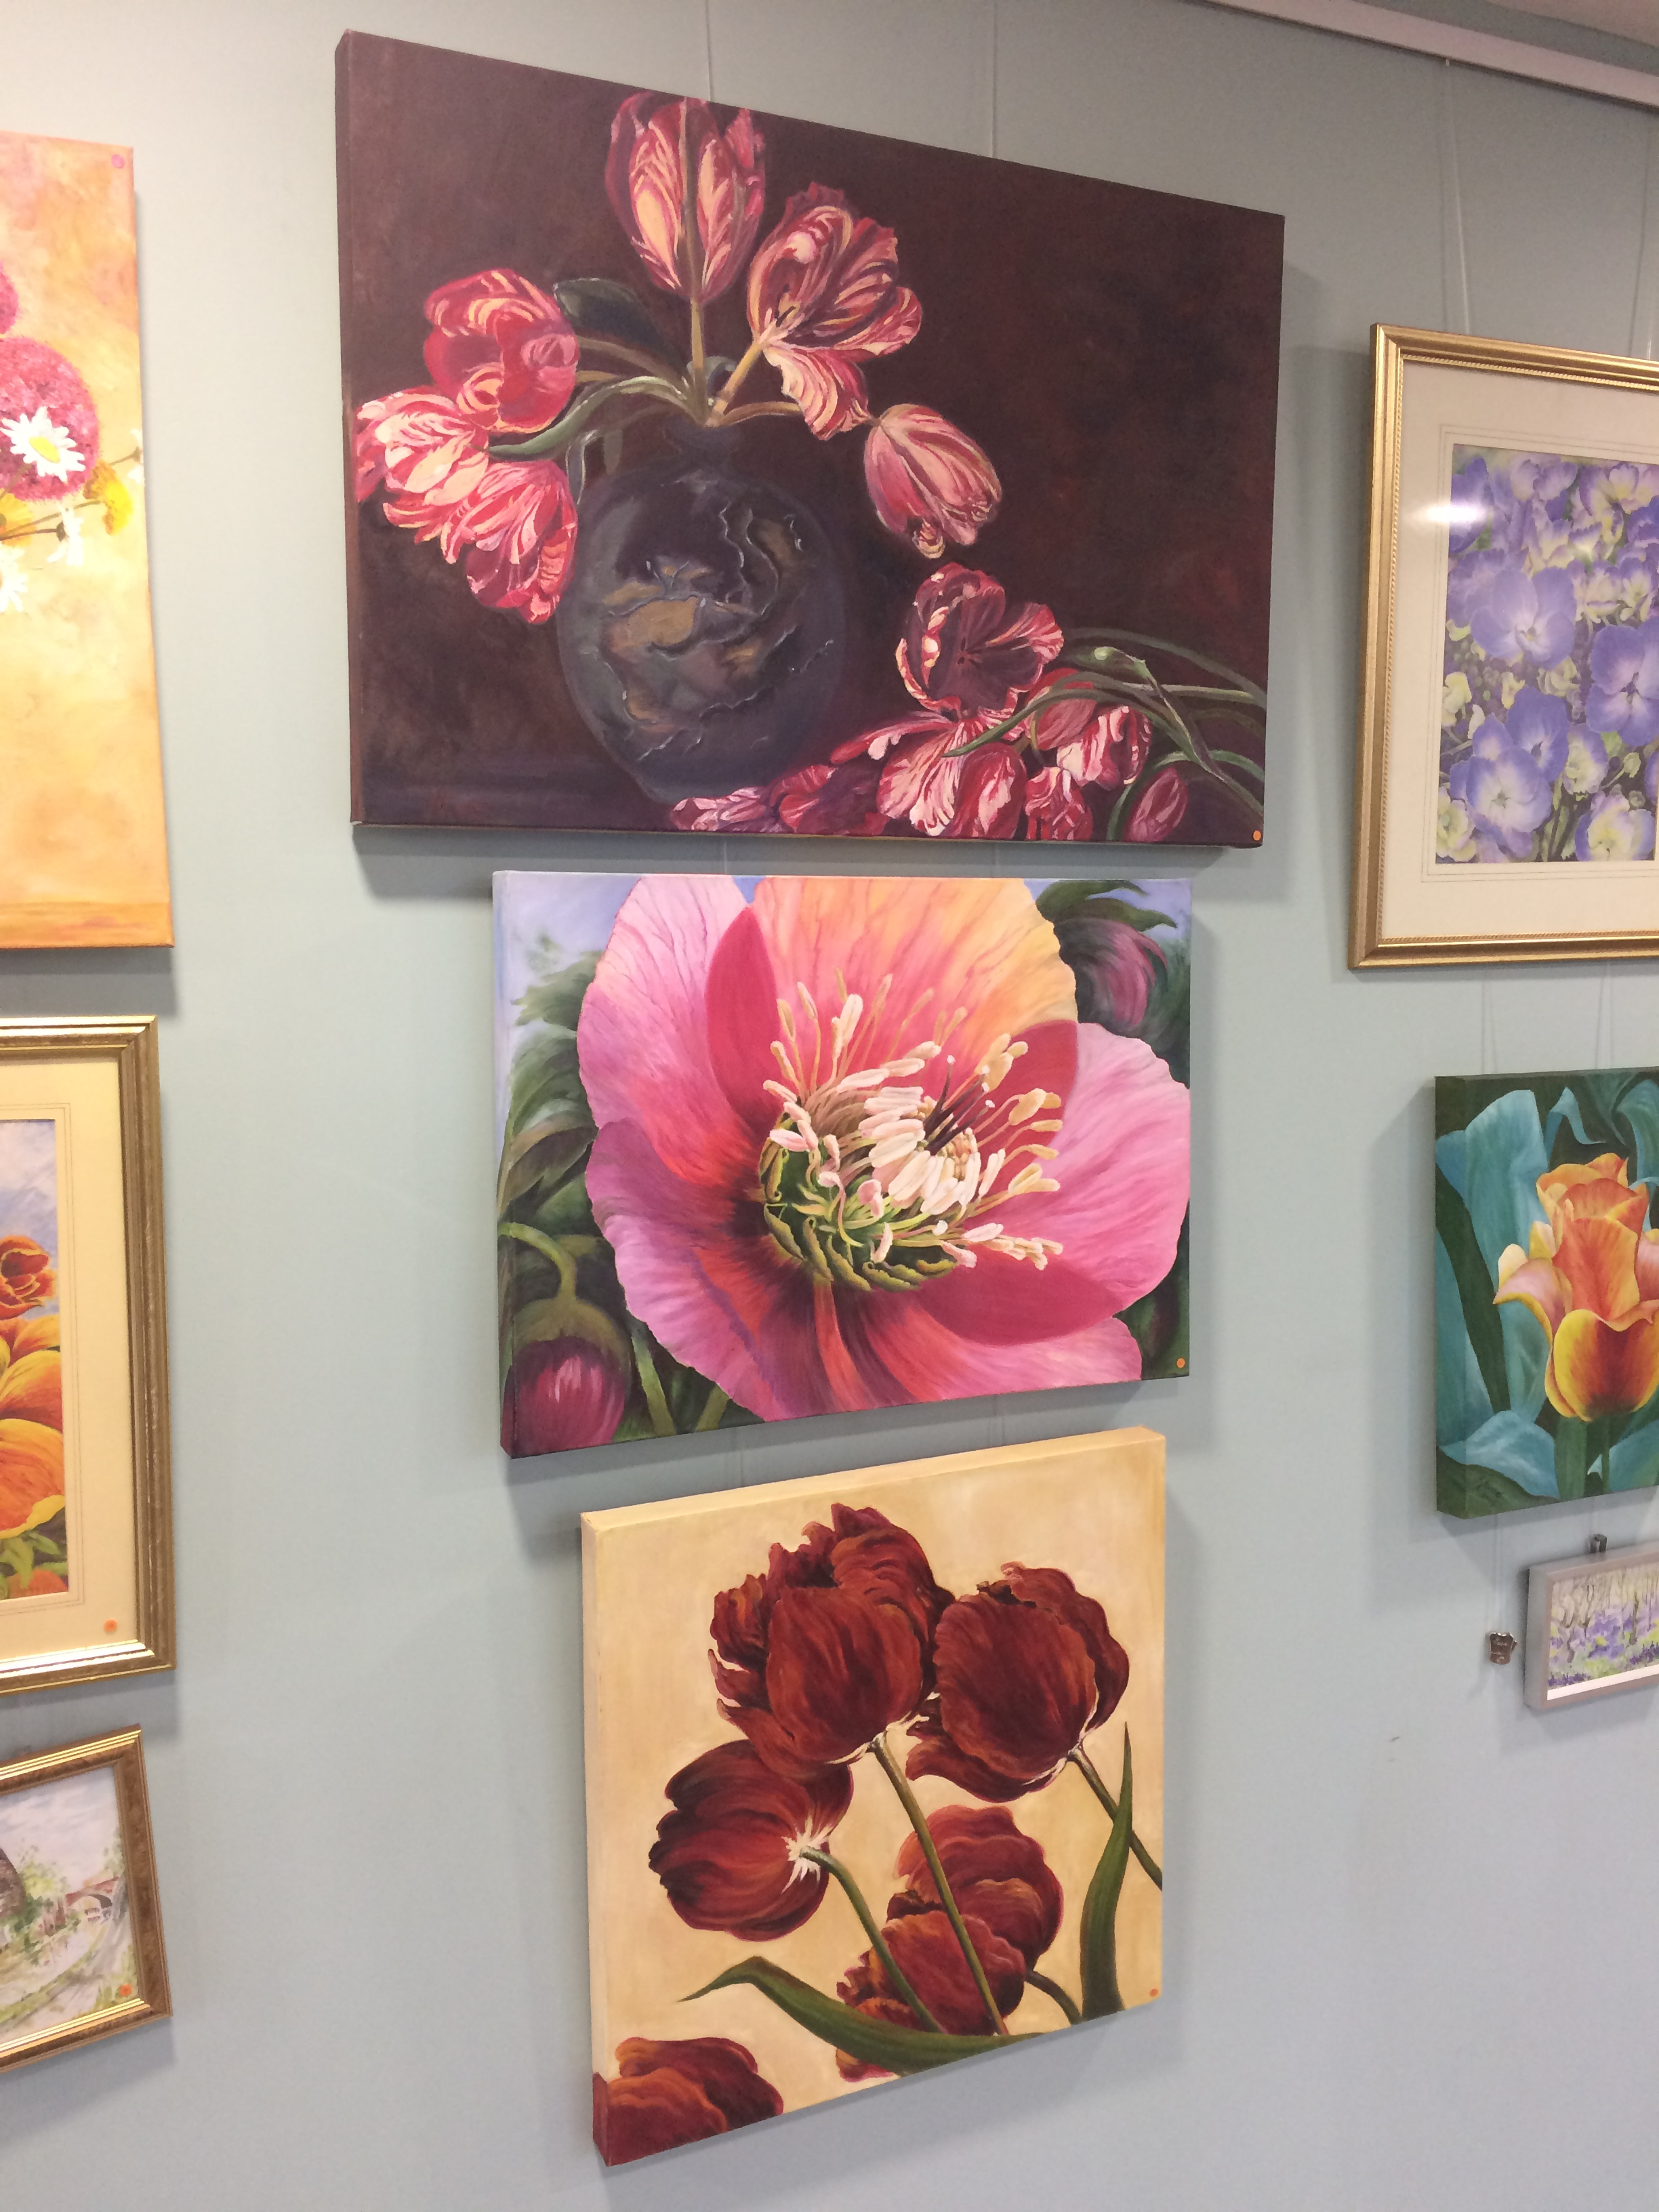 Local Castle Art Group Exhibit at the Portal